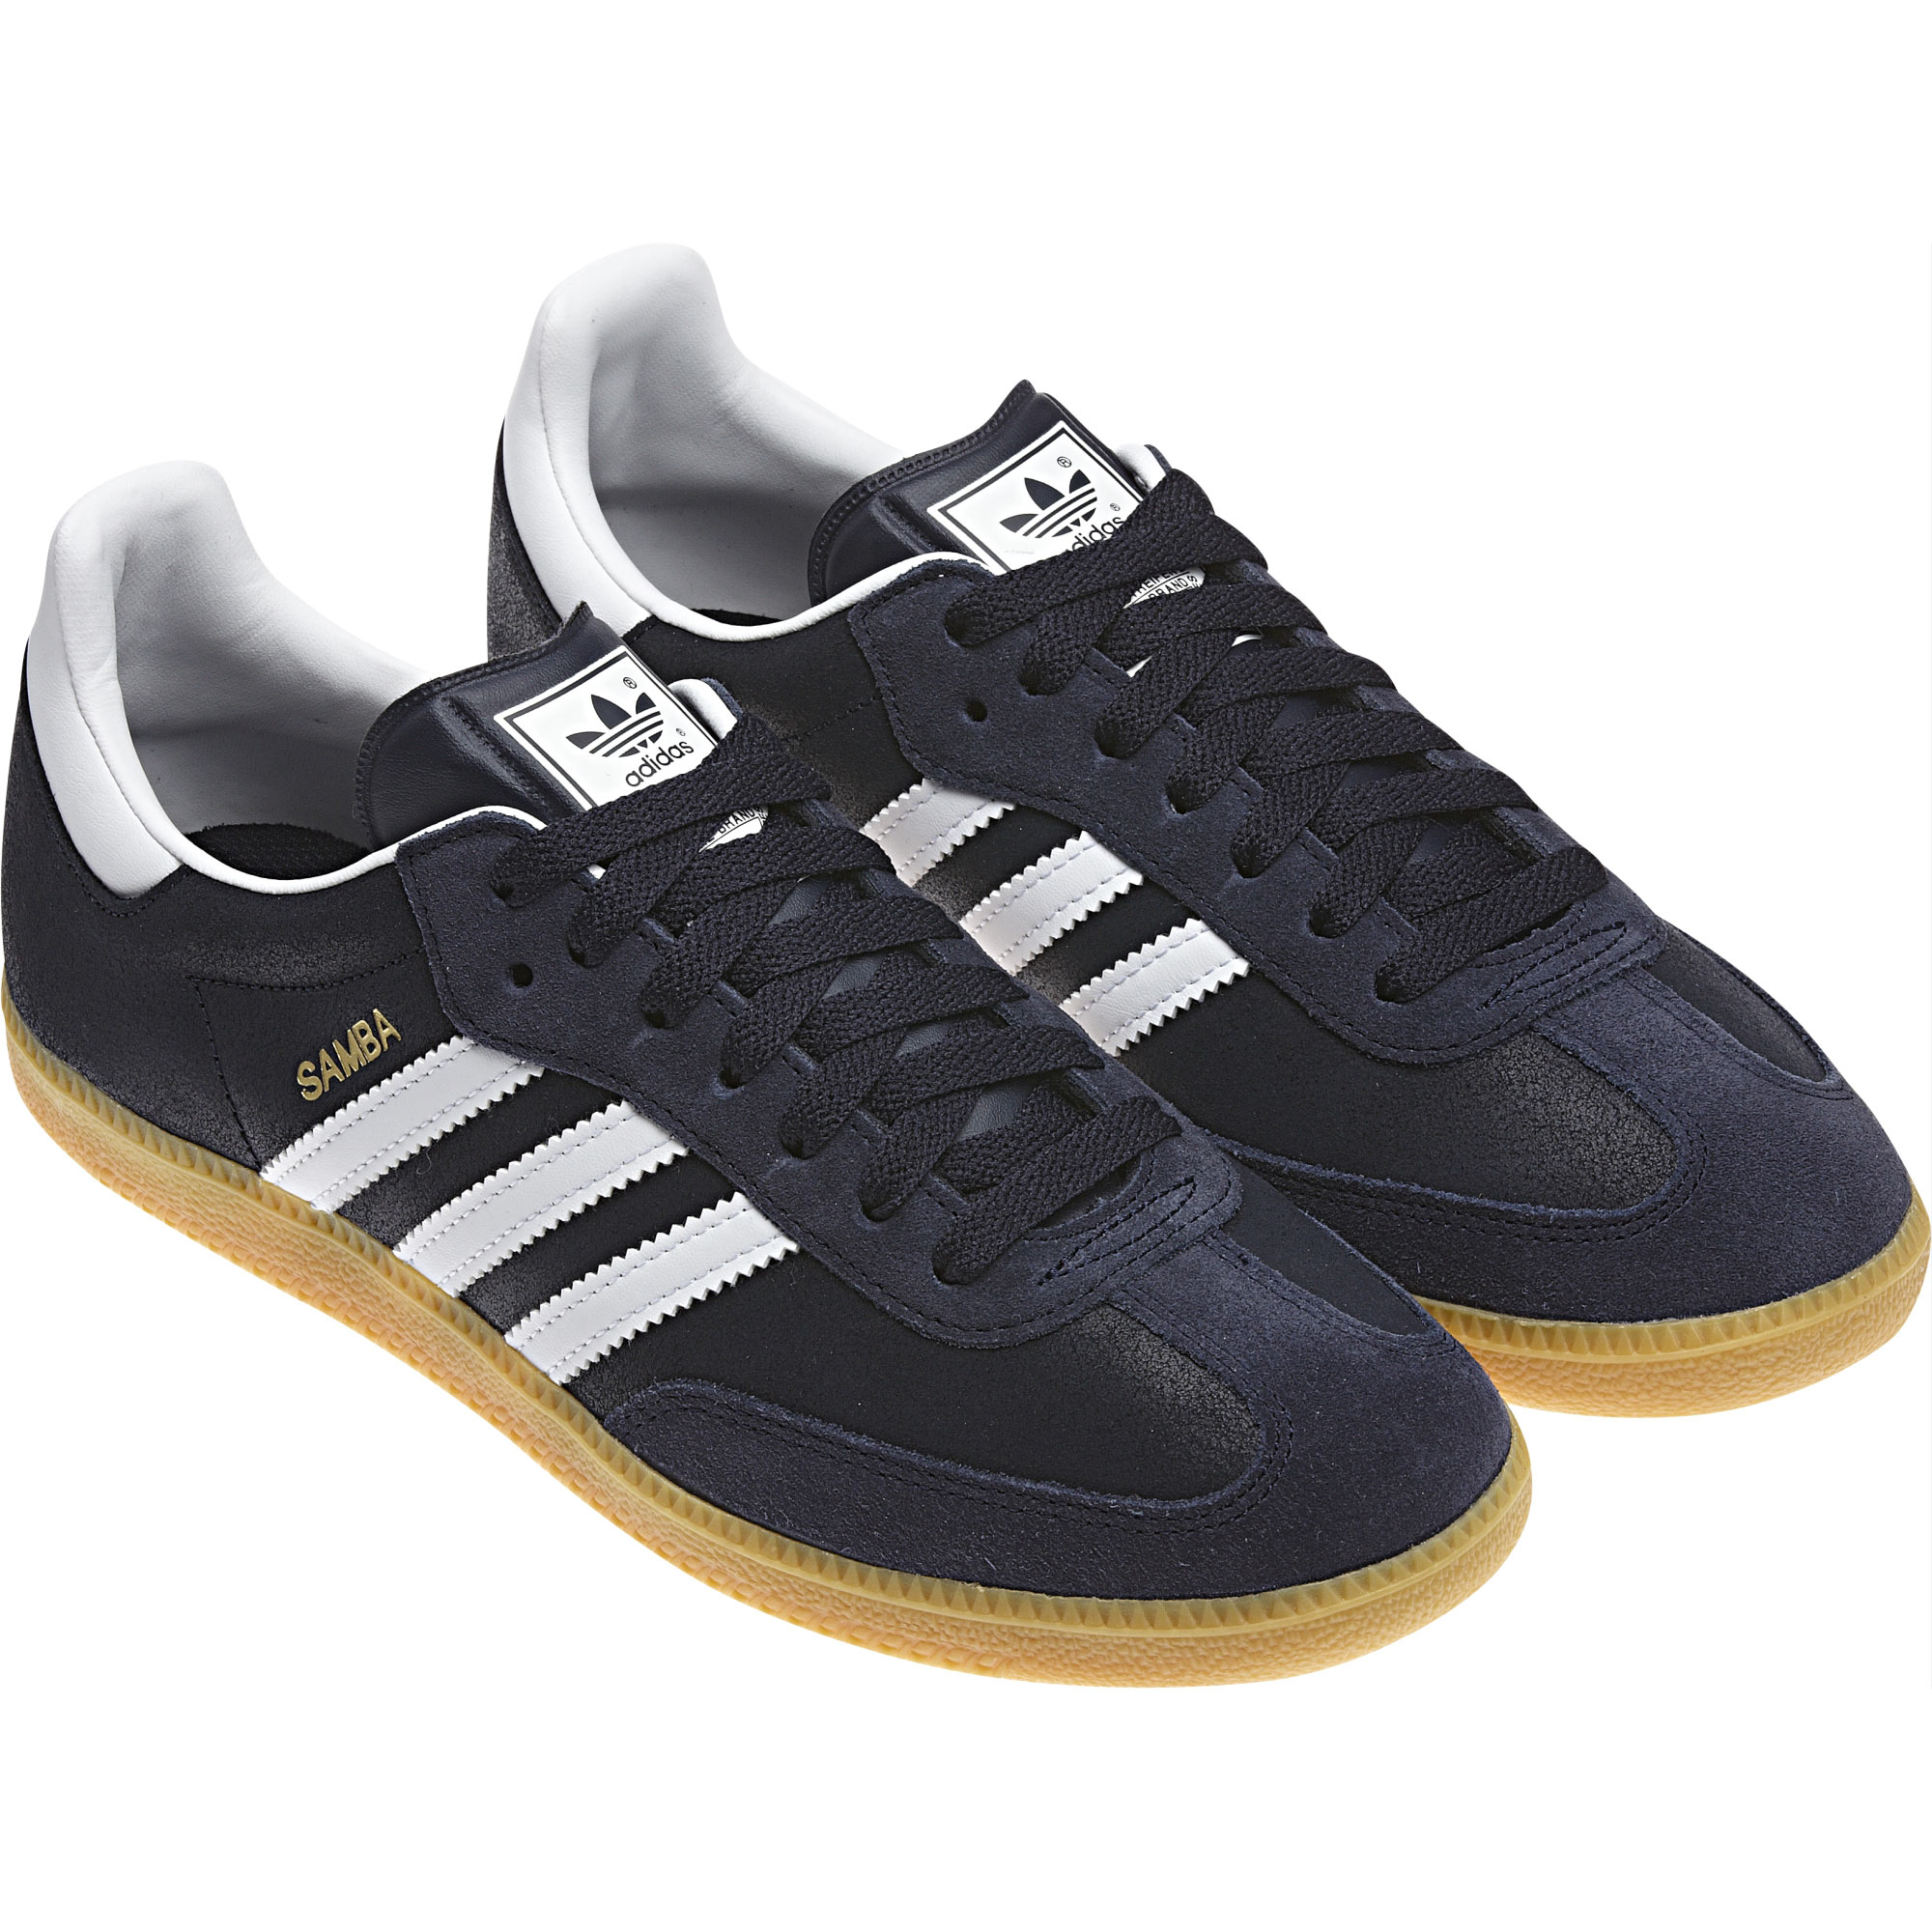 Adidas Running Shoes Mexico